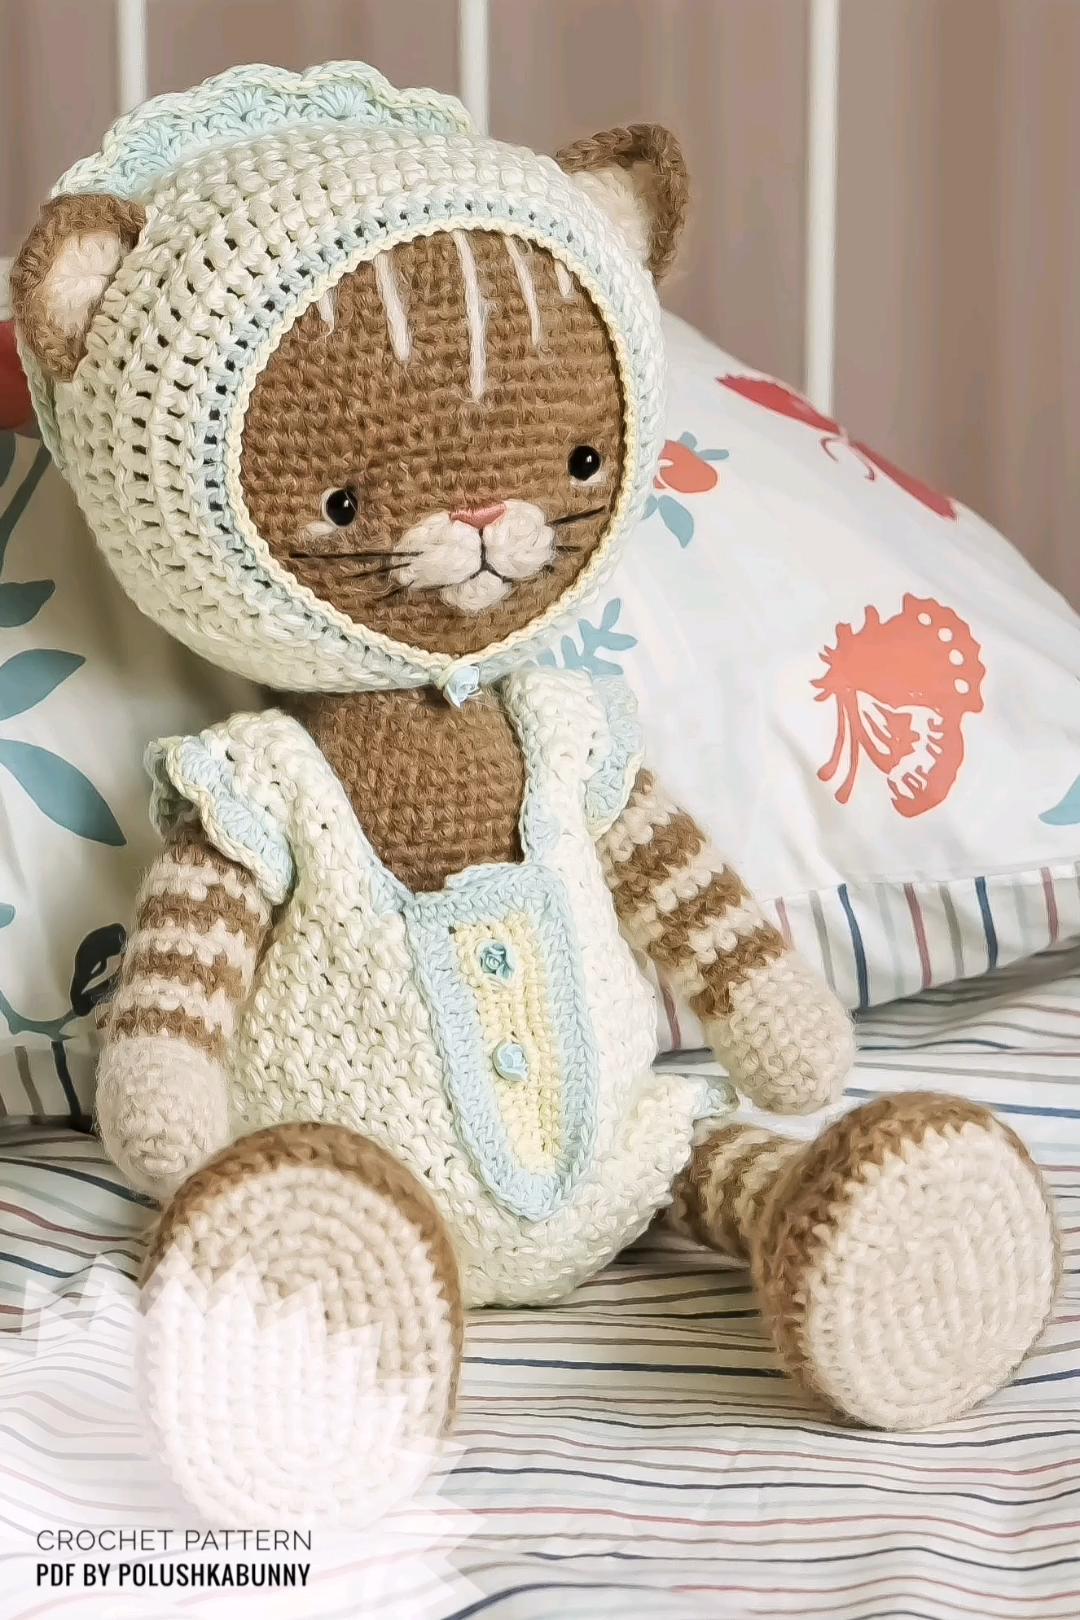 Photo of Crochet Pattern – Onesie for crocheted Cat toy by PolushkaBunny #crochet #cat #outfit #pattern #diy